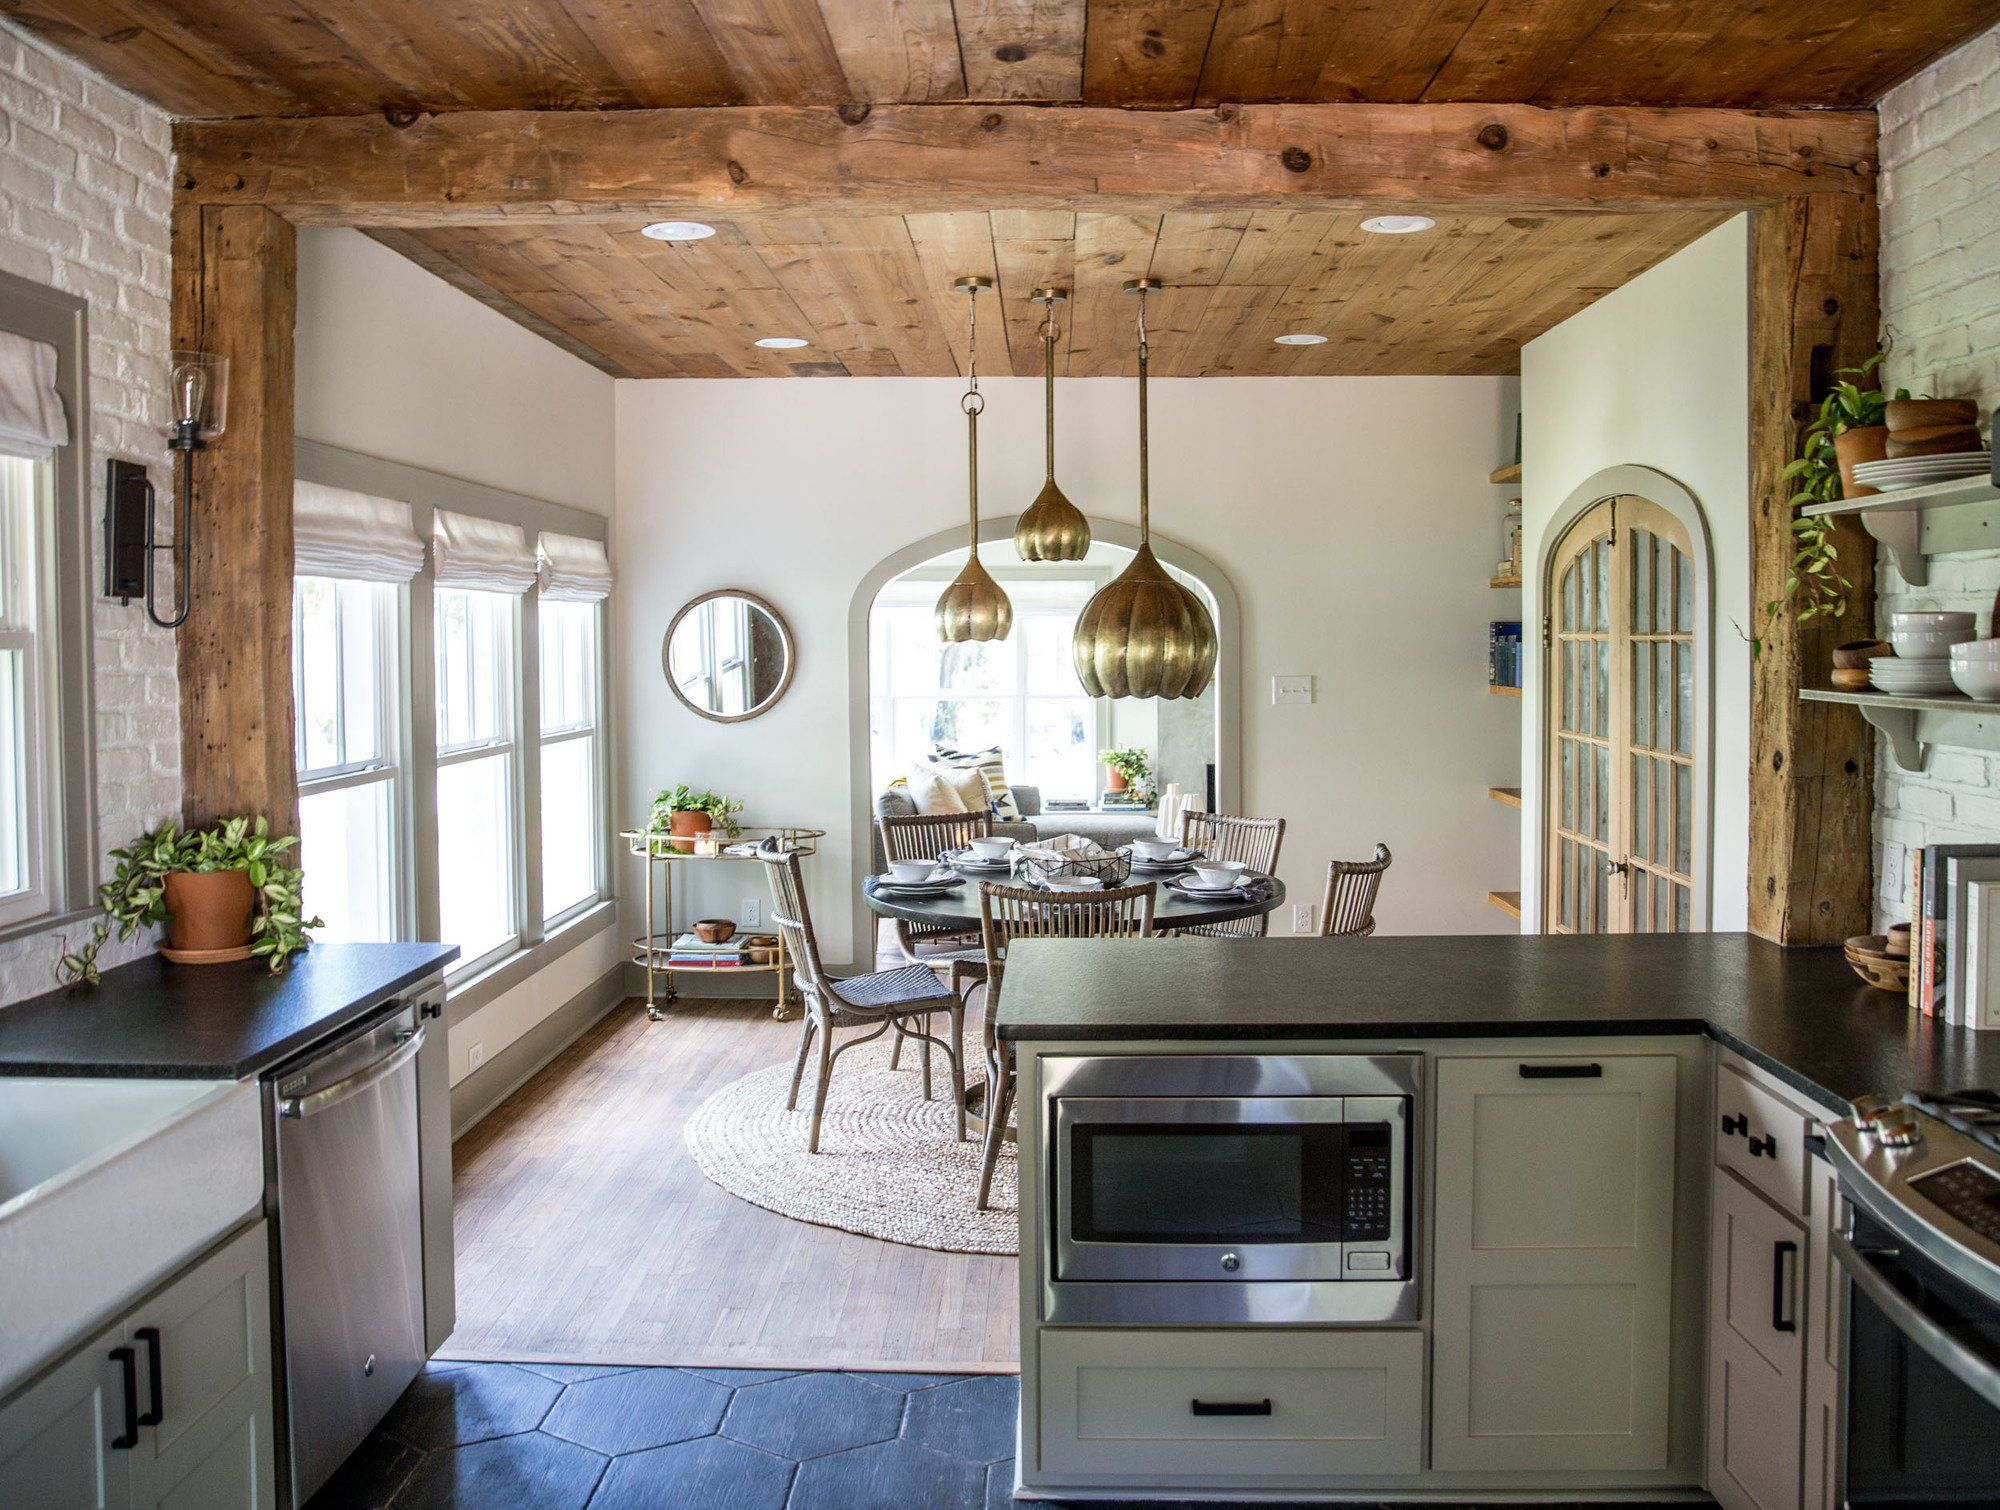 Fixer upper kitchens season 4 - Fixer Upper Kitchens Season 4